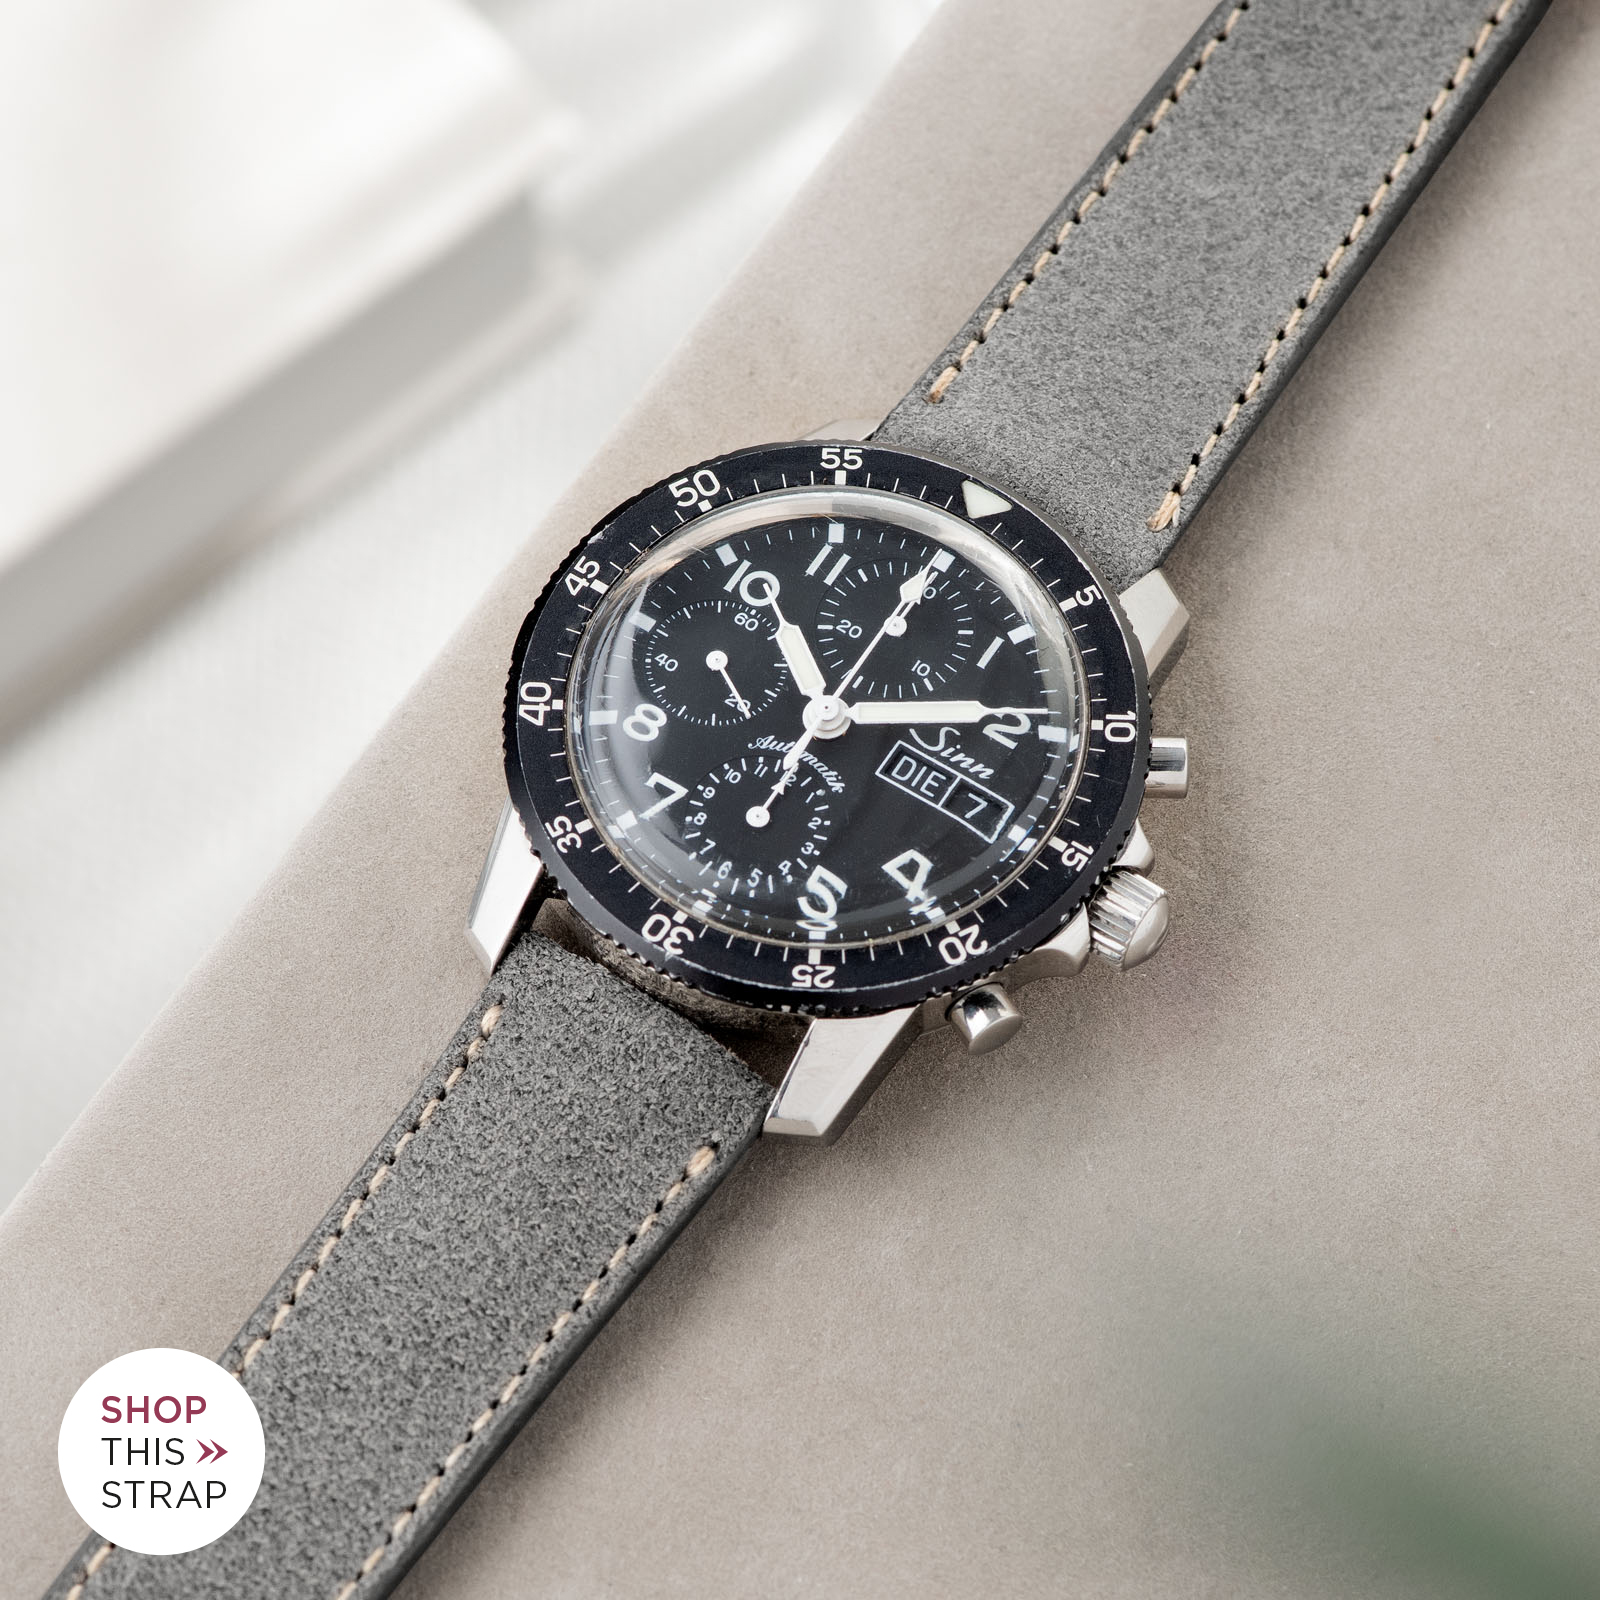 Bulang and Sons_Strap Guide_Sinn 103_Refined Rugged Grey Leather Watch Strap